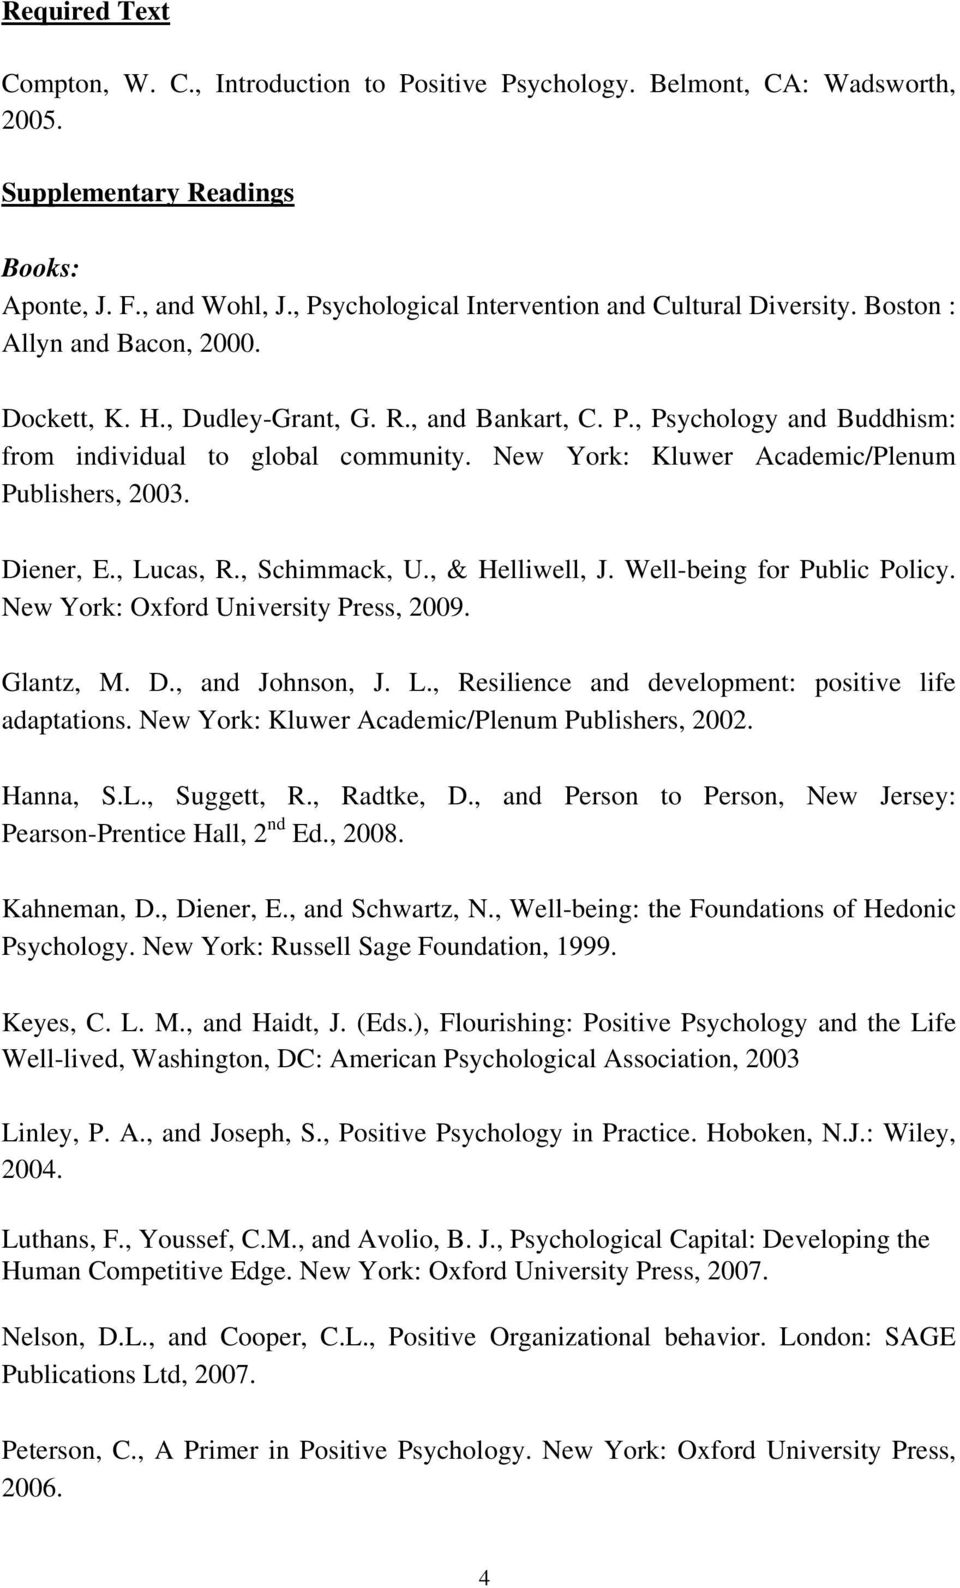 New York: Kluwer Academic/Plenum Publishers, 2003. Diener, E., Lucas, R., Schimmack, U., & Helliwell, J. Well-being for Public Policy. New York: Oxford University Press, 2009. Glantz, M. D., and Johnson, J.